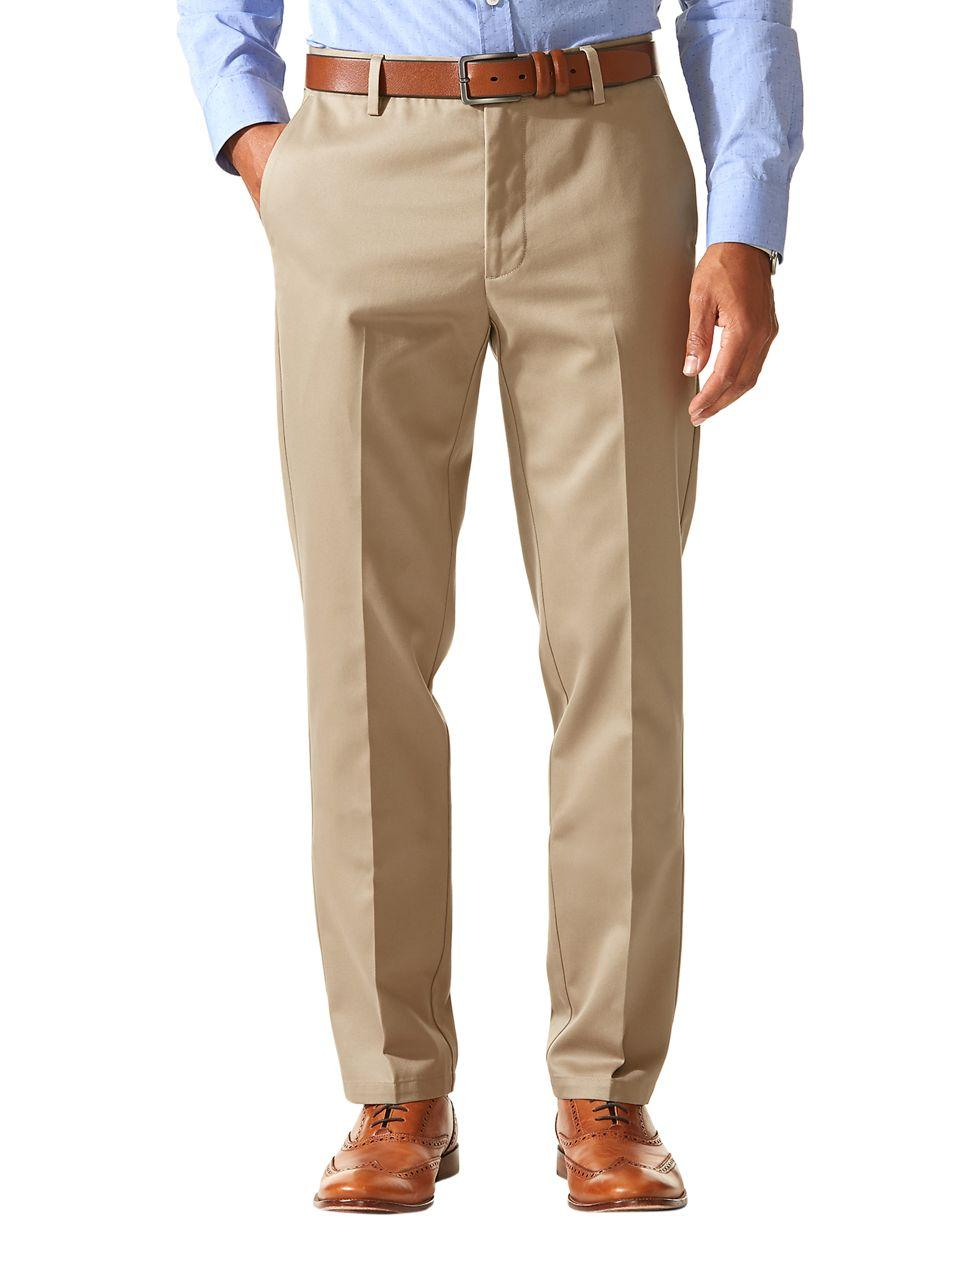 Put together the perfect outfit with our collection of Men's Khakis and Pants in a variety of fits and styles at American Eagle Outfitters. Slim Fit Pants. New Online Only AE Ne(X)t Level Slim Khaki Pant.